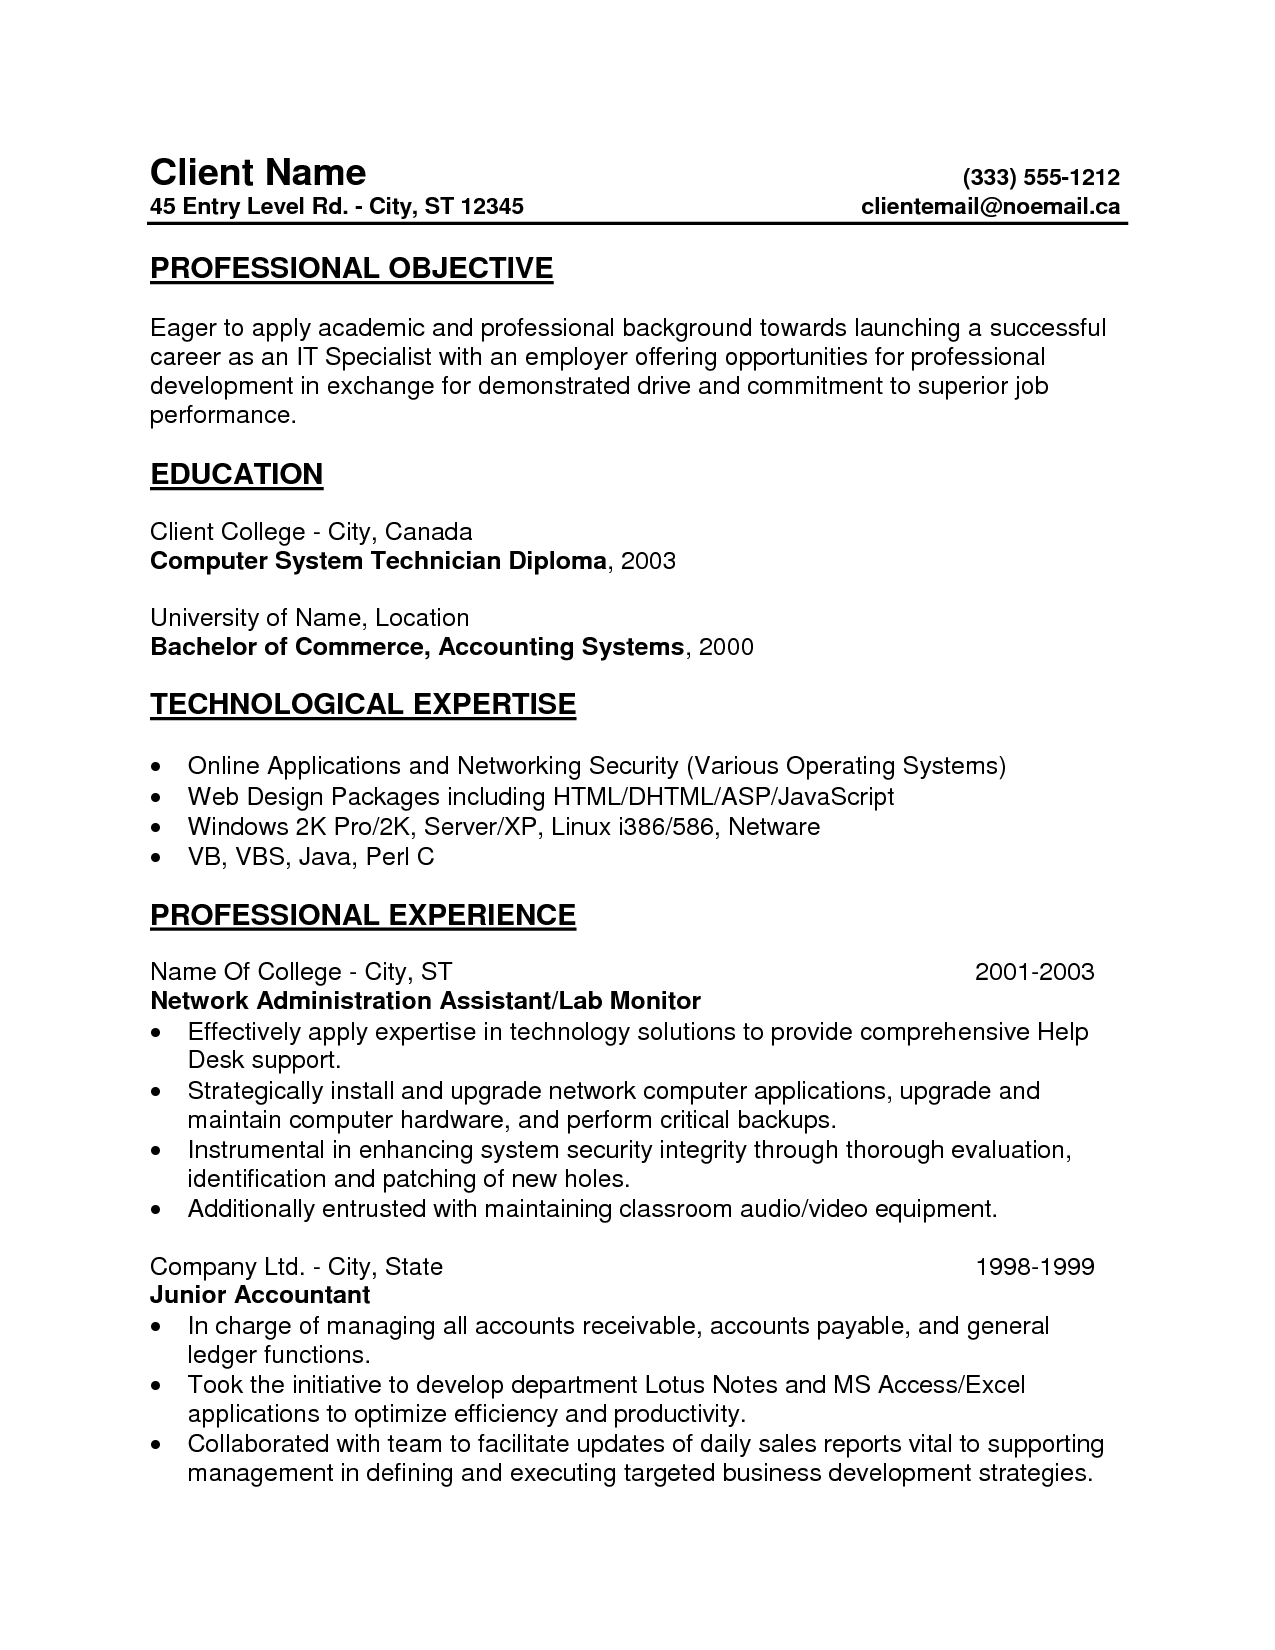 sample resume dental assistant entry level dental professional objective